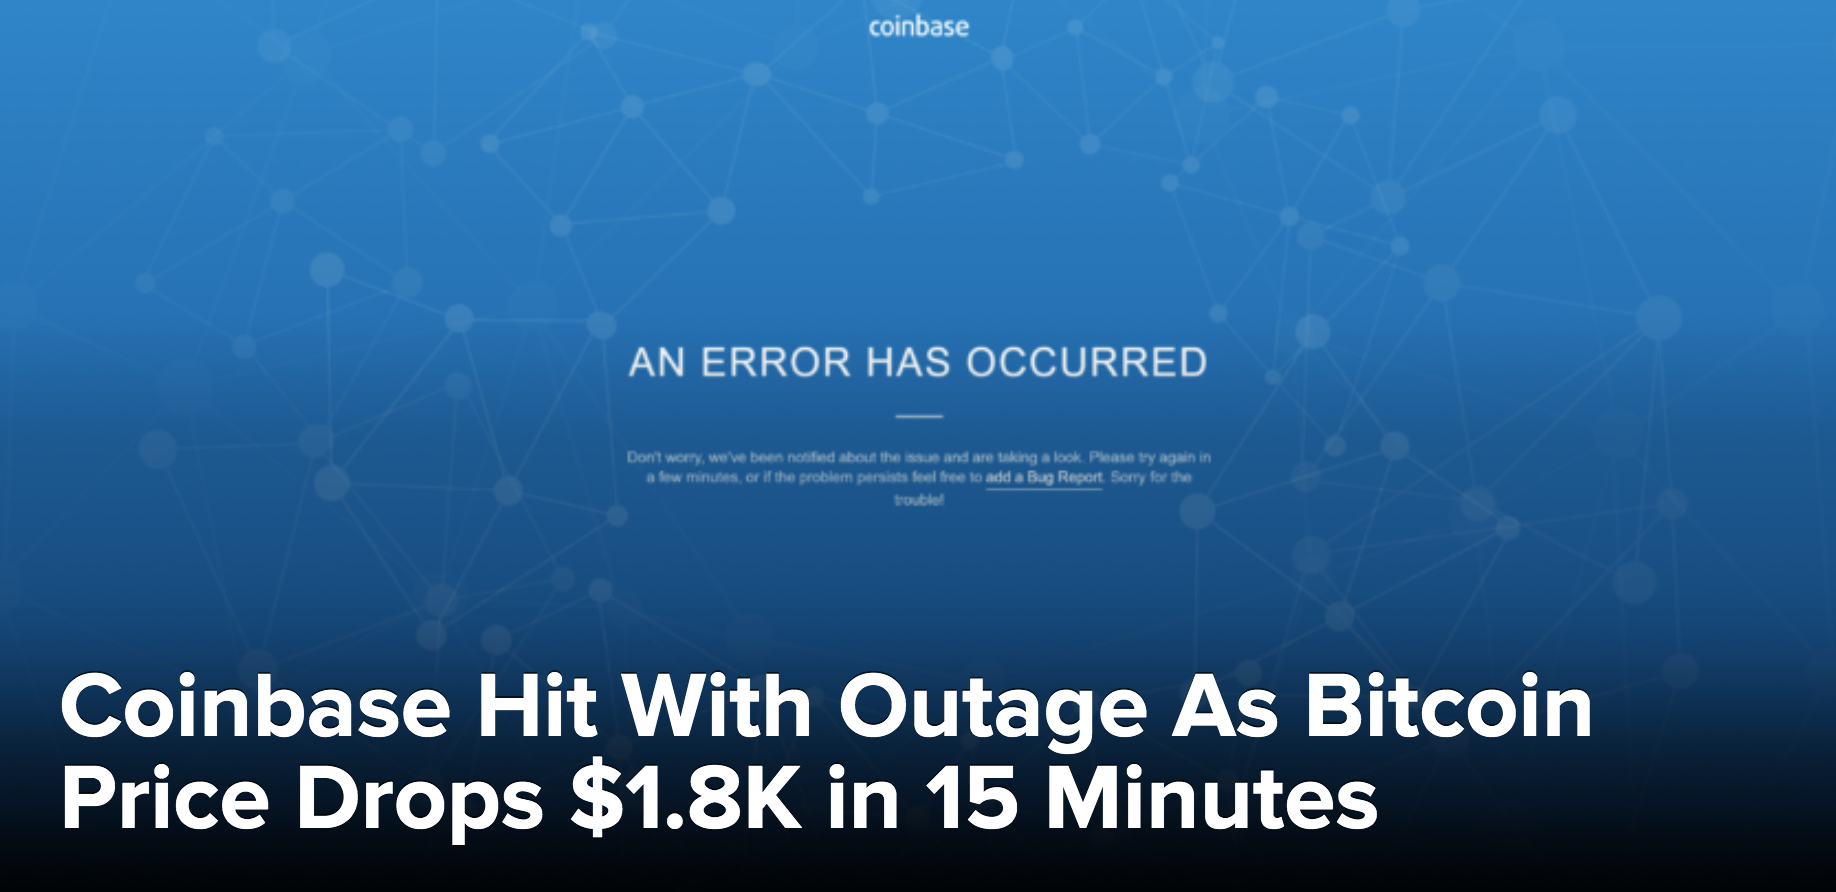 Coinbase Hit With Outage As Bitcoin Price Drops $1.8K In 15 Minutes